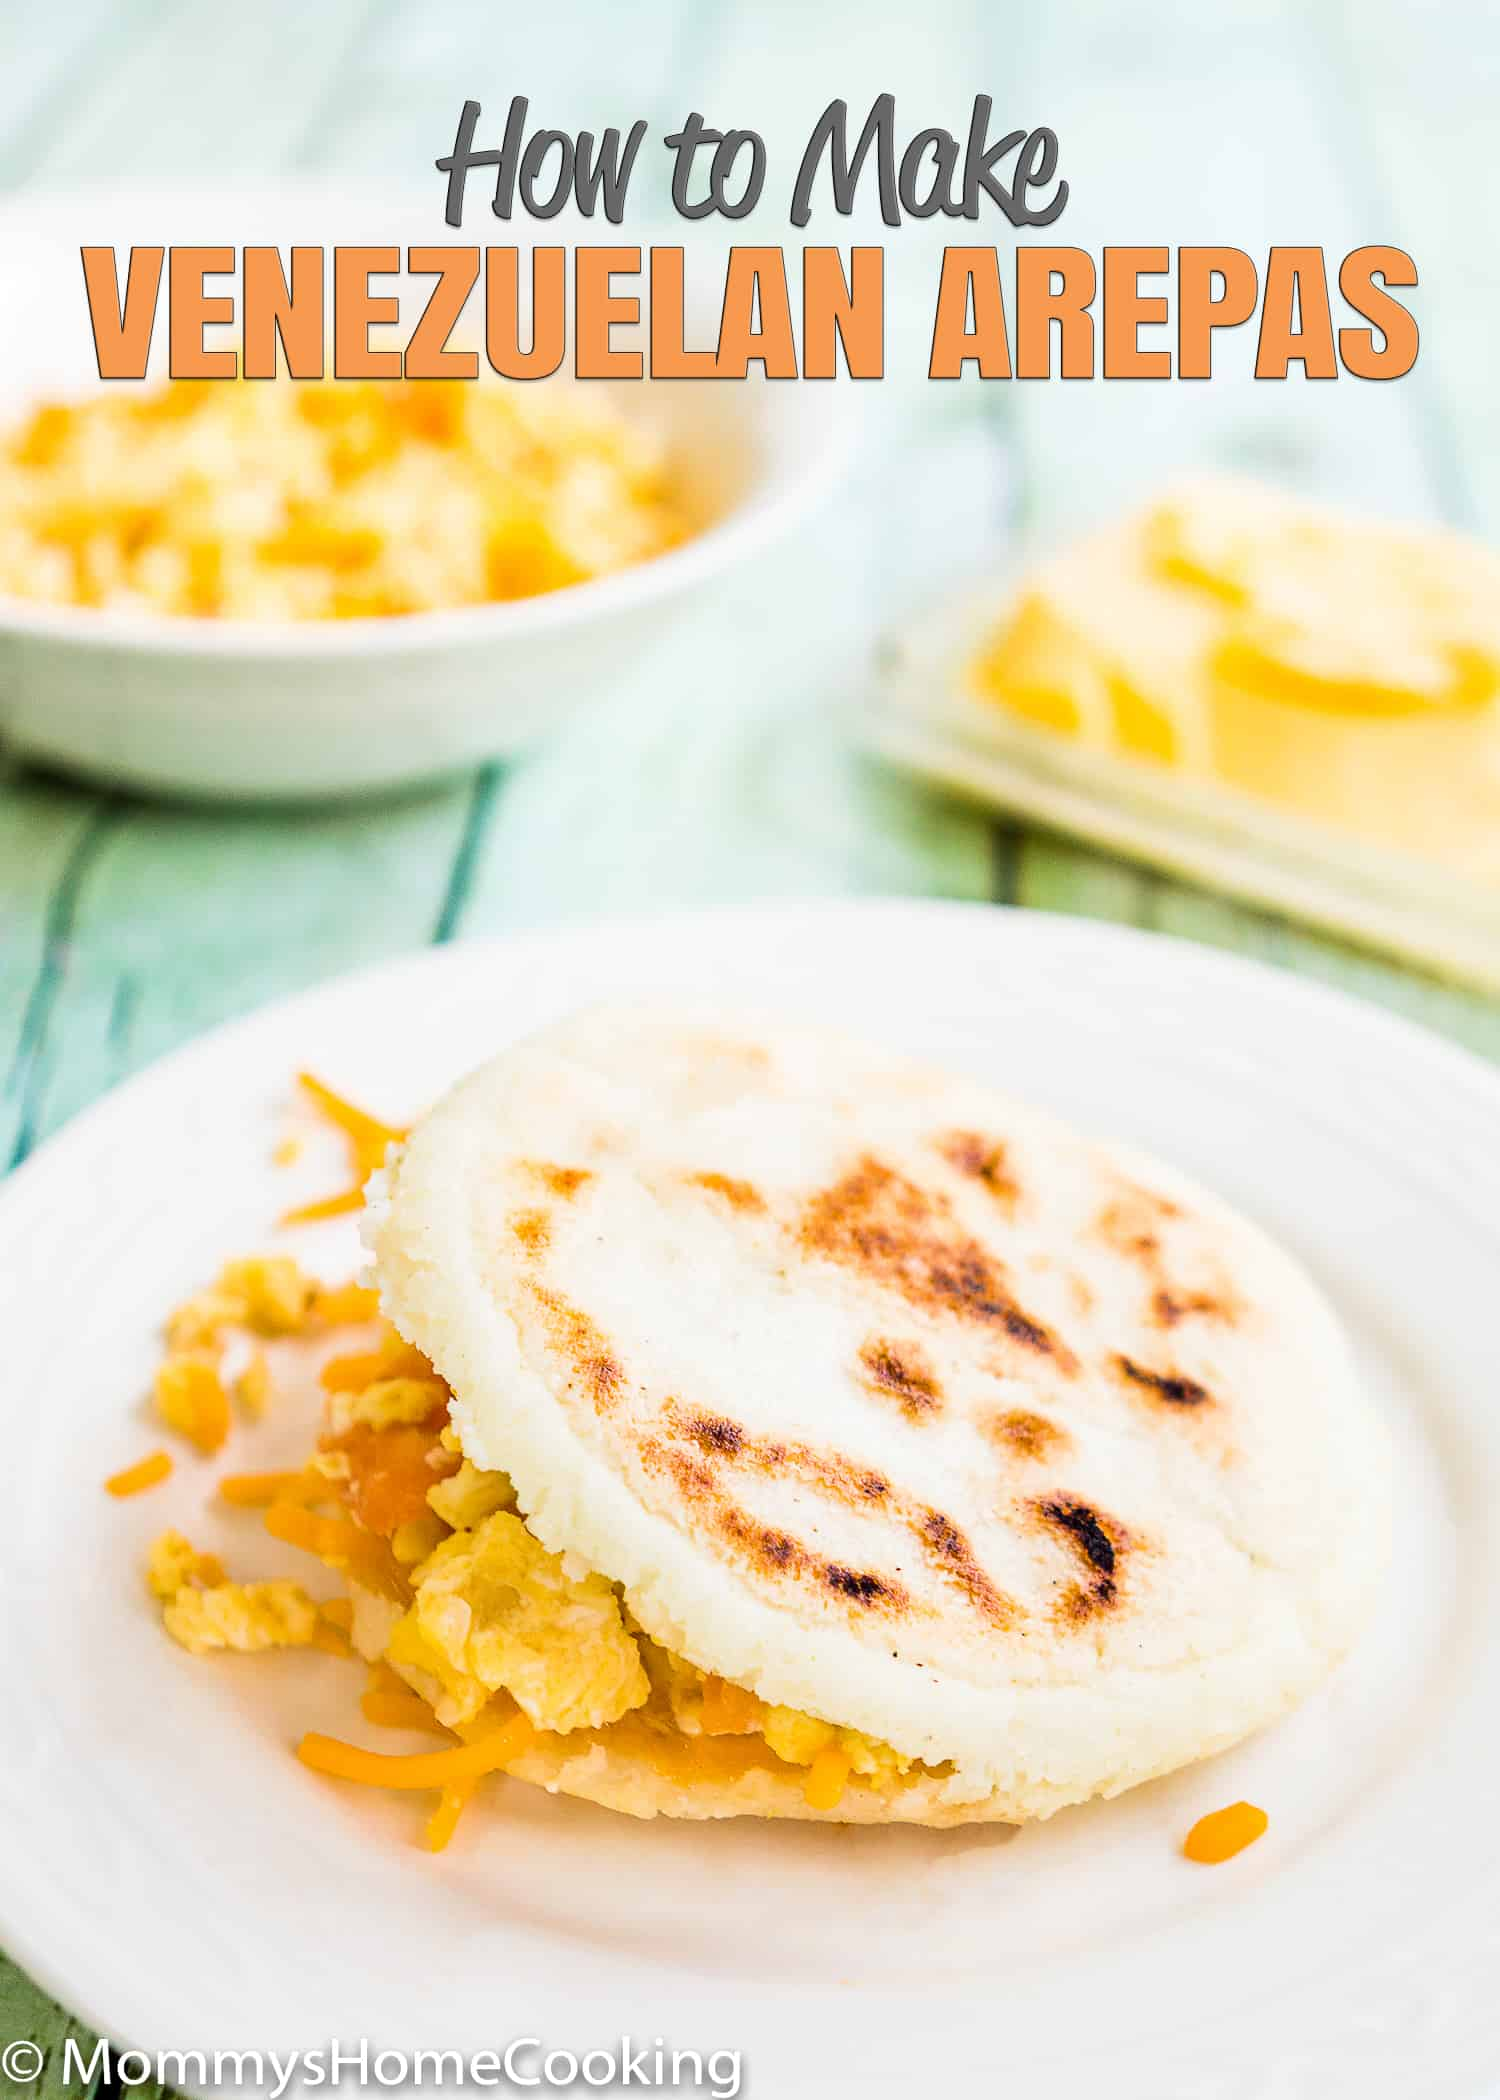 How to make venezuelan arepas learn how to make venezuelan arepas and open a world of delicious food possibilities for your family these flat patty made of maize flour are sooo yummy forumfinder Choice Image